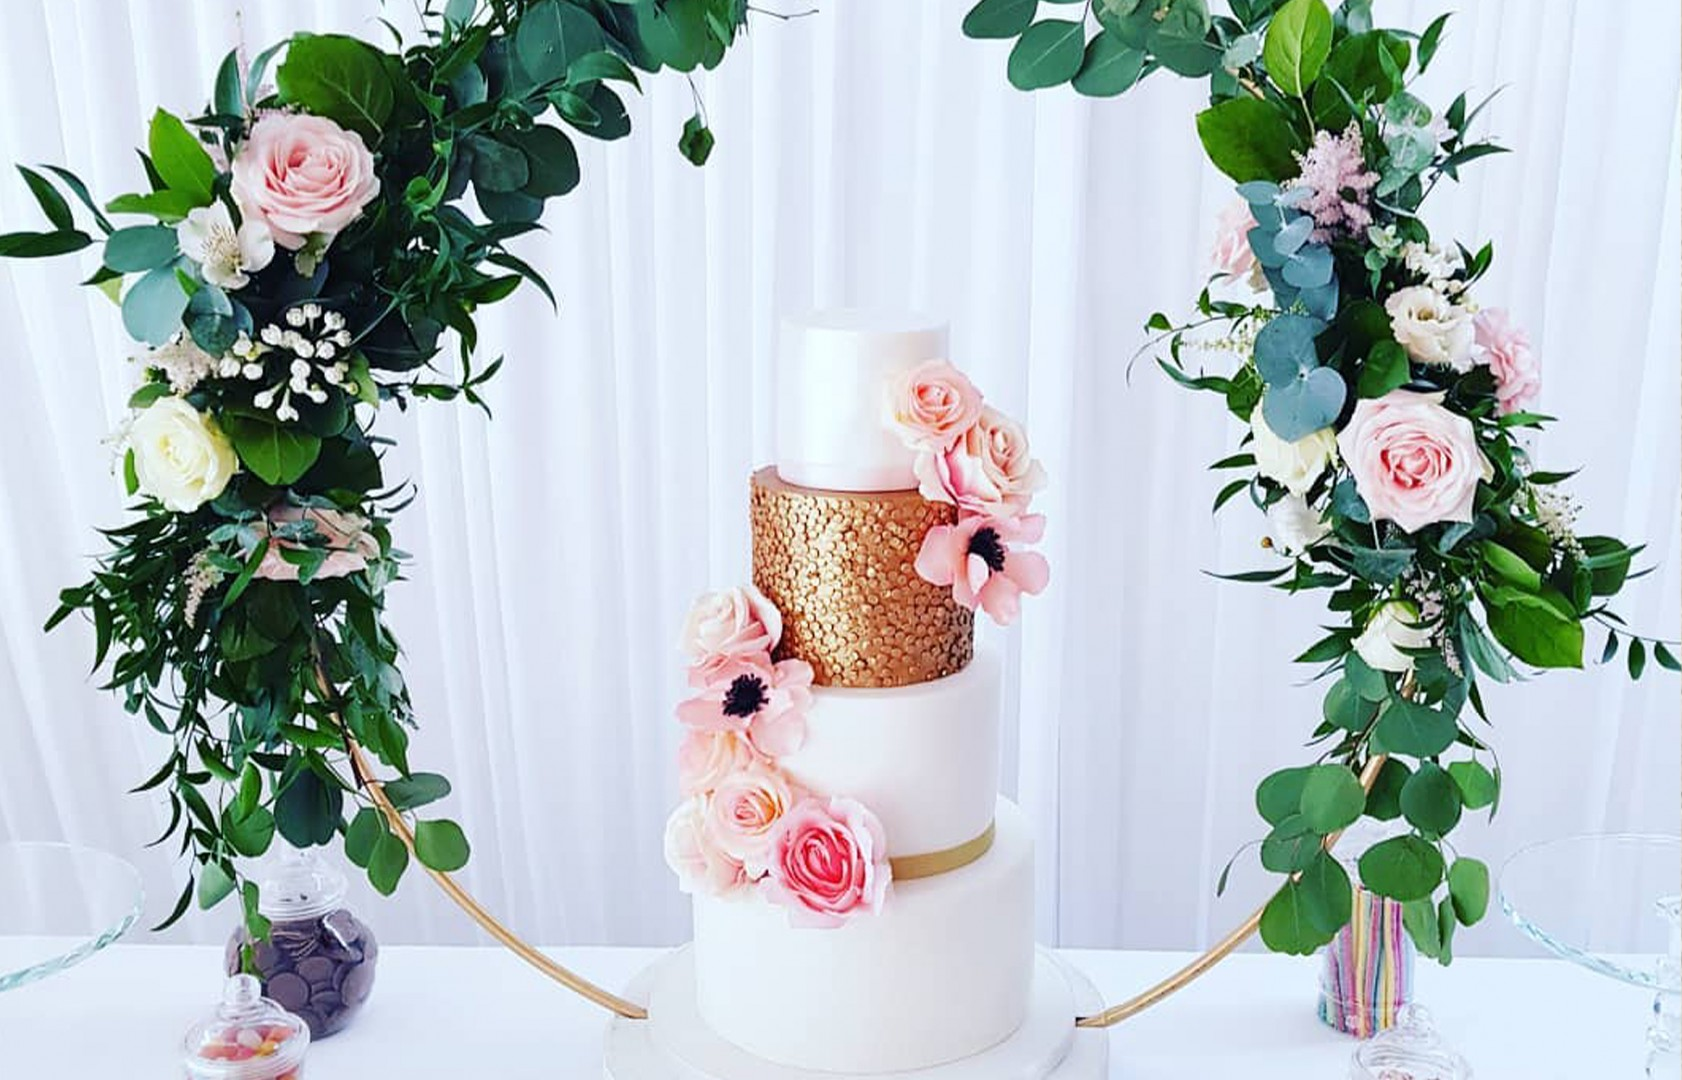 Wedding cake made by The Cake Junction